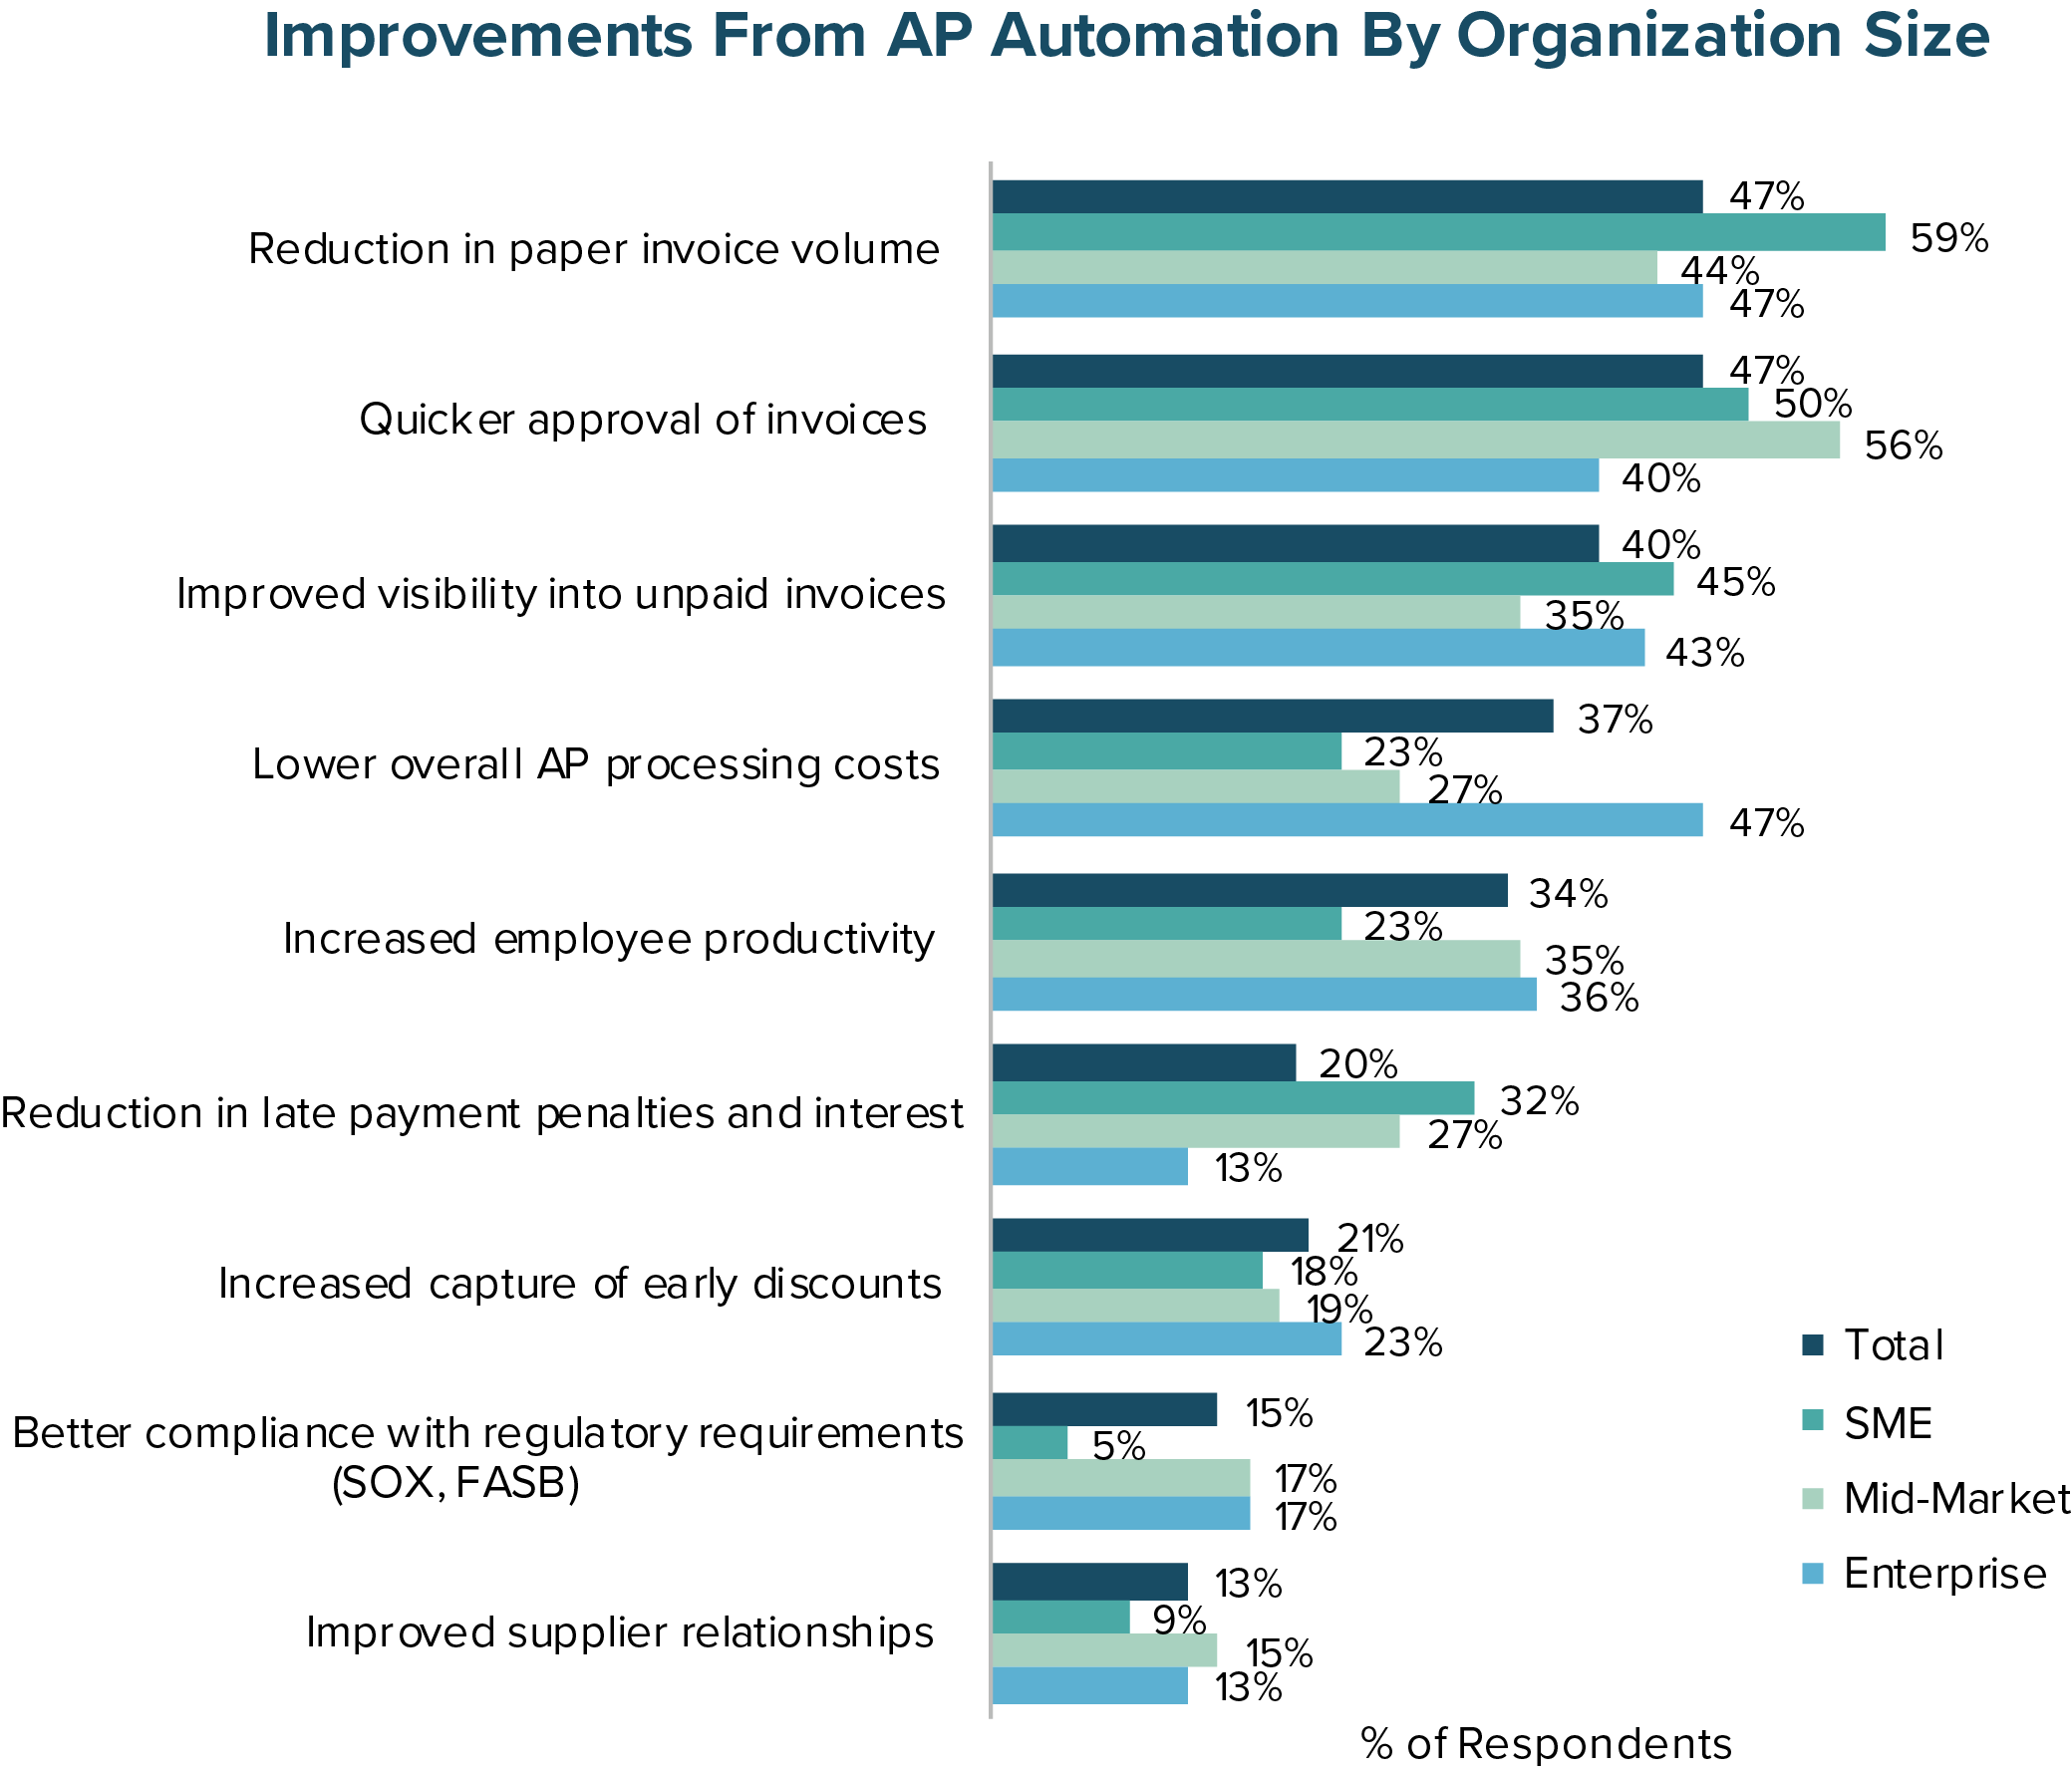 Improvements From AP Automation by Organization Size